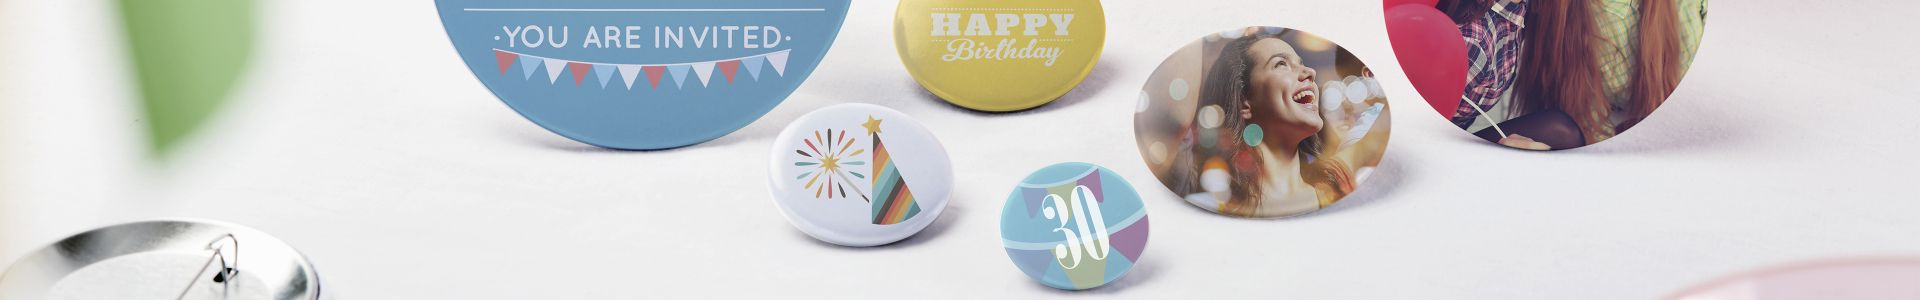 Badges for parties and celebrations | Camaloon